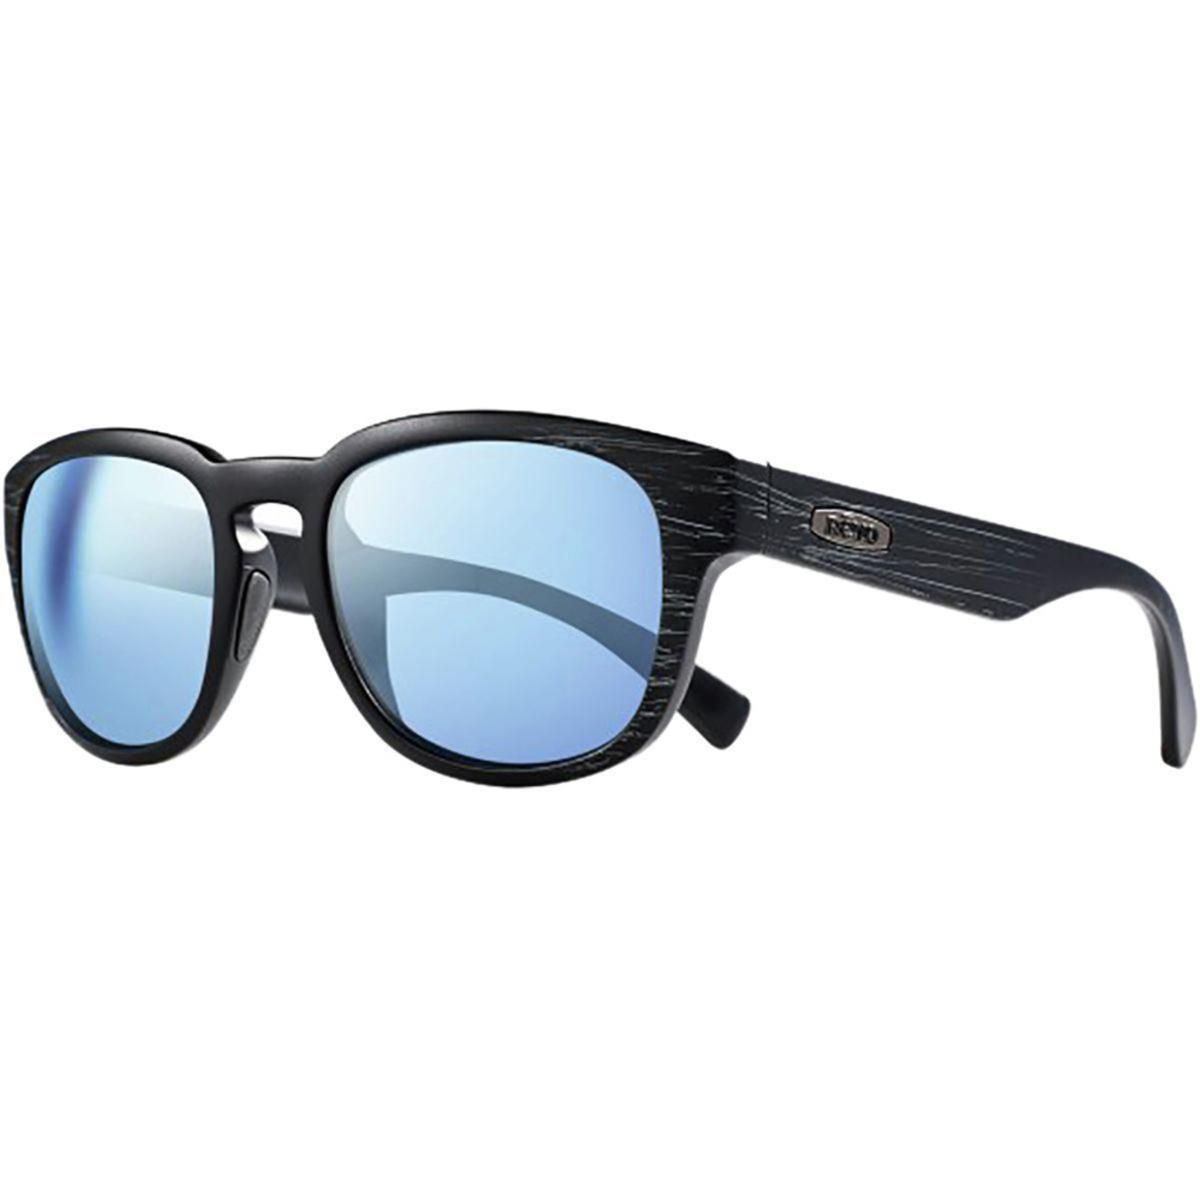 57e3fa991 Revo Unisex Zinger Modified Wayfarer Sunglasses Blue Water Lens with Matte  Black Scratch Frame - The Warming Store